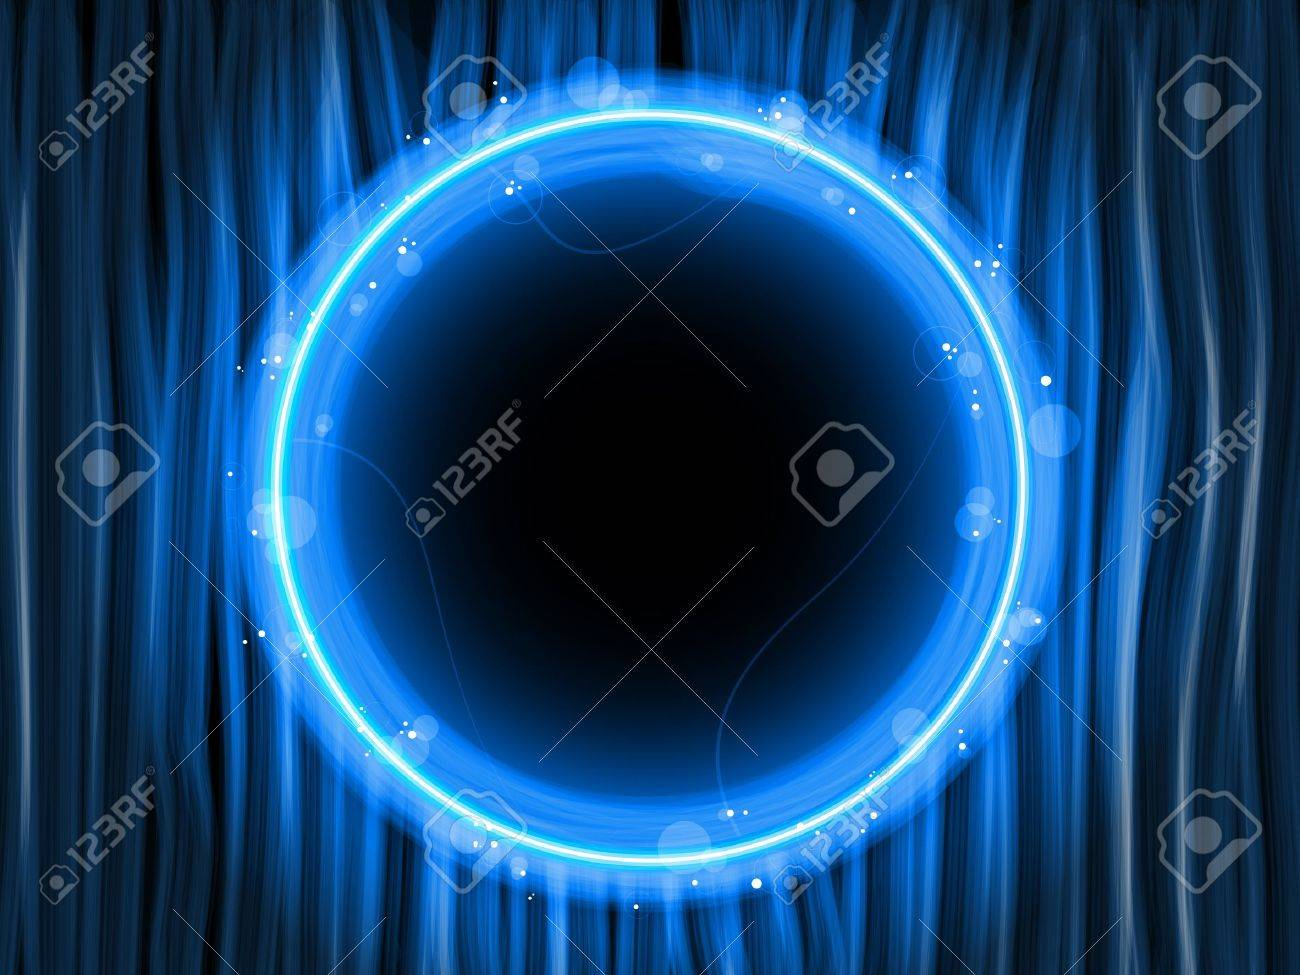 Abstract Blue Lines Background with Black Circle Stock Vector - 7743656